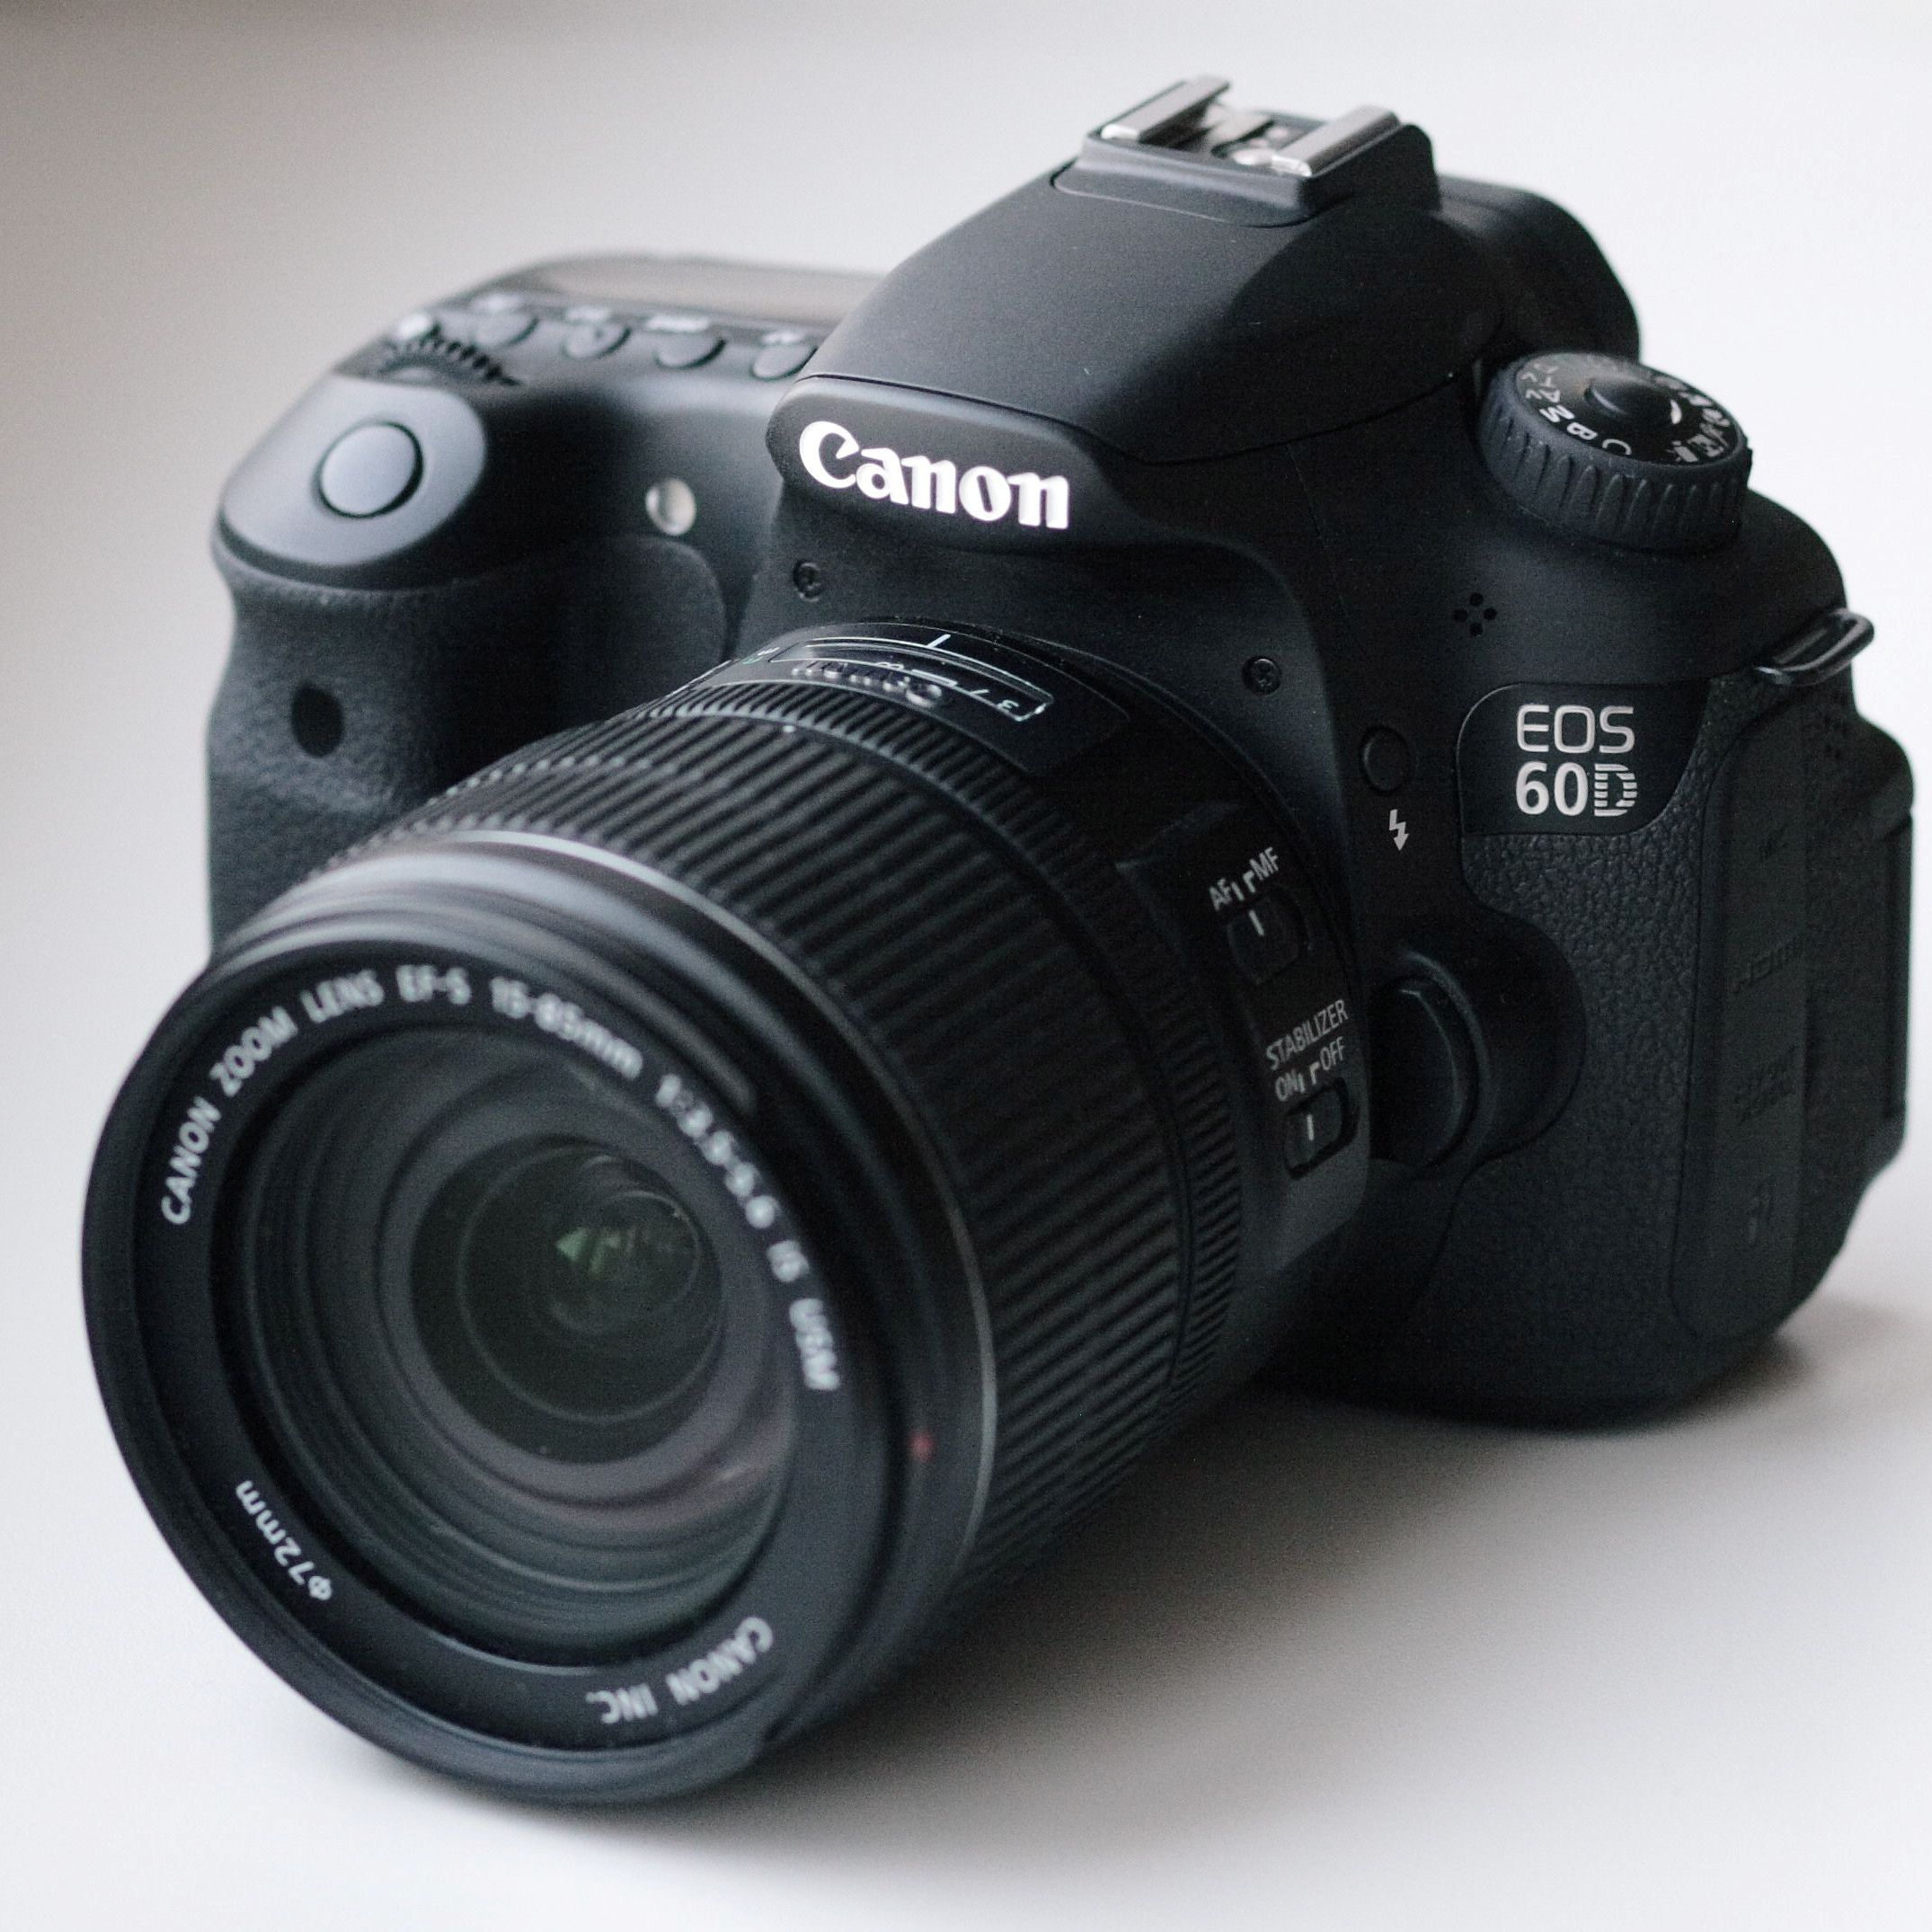 Troubleshooting Canon Camera Problems